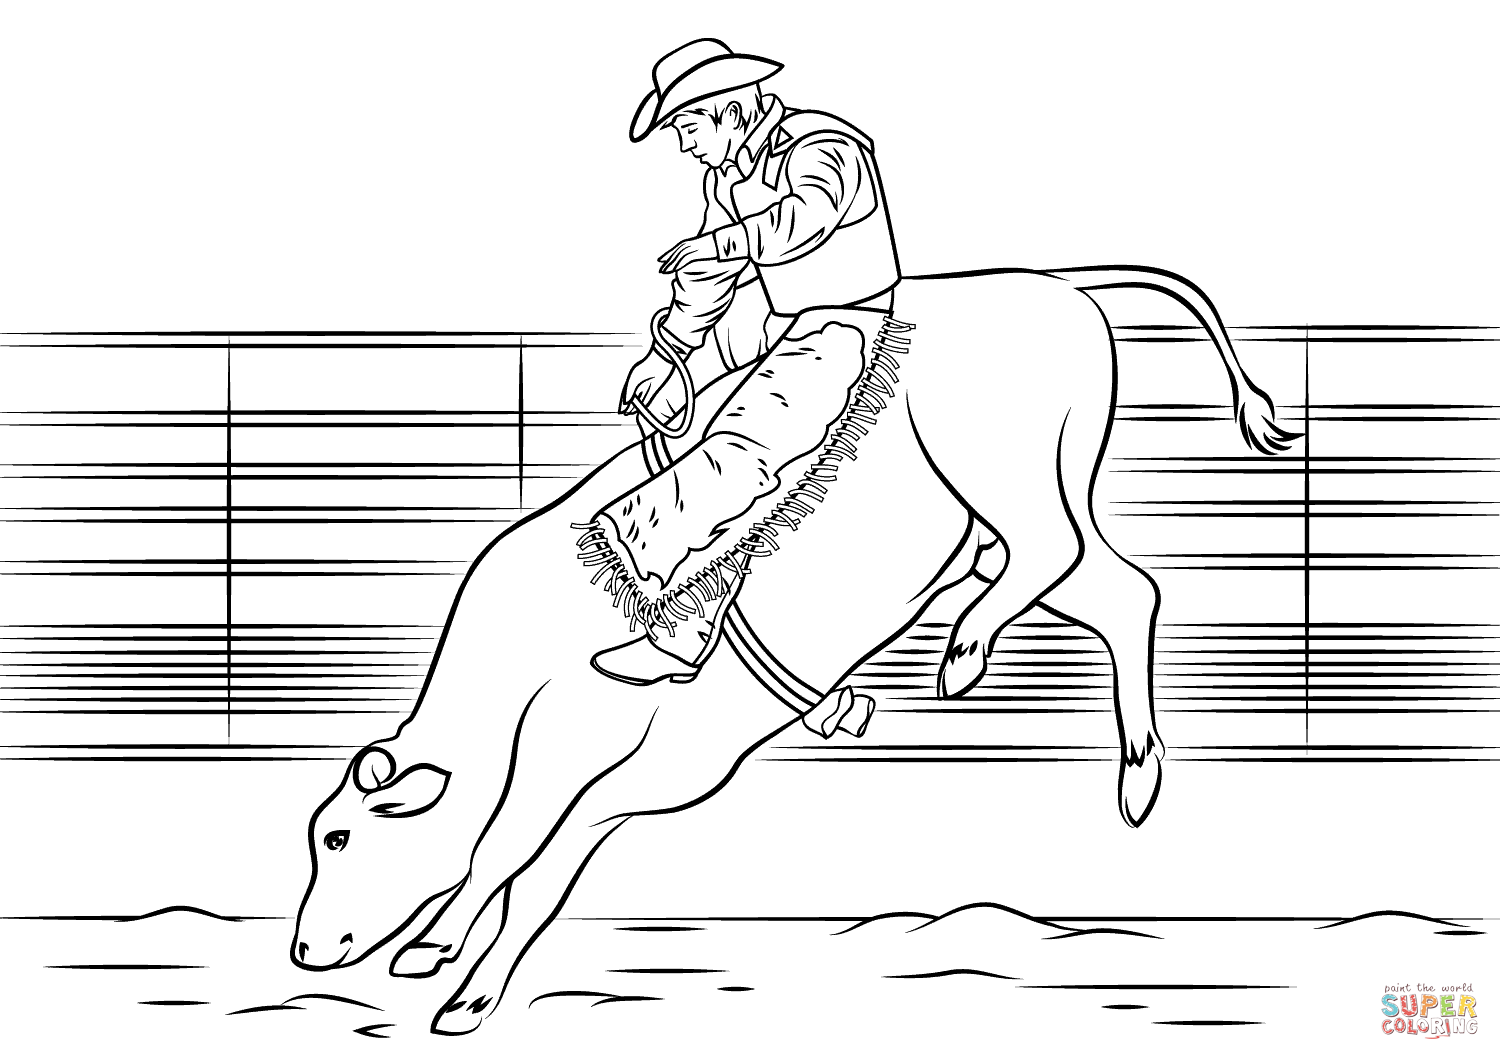 pbr bull coloring pages - photo#3